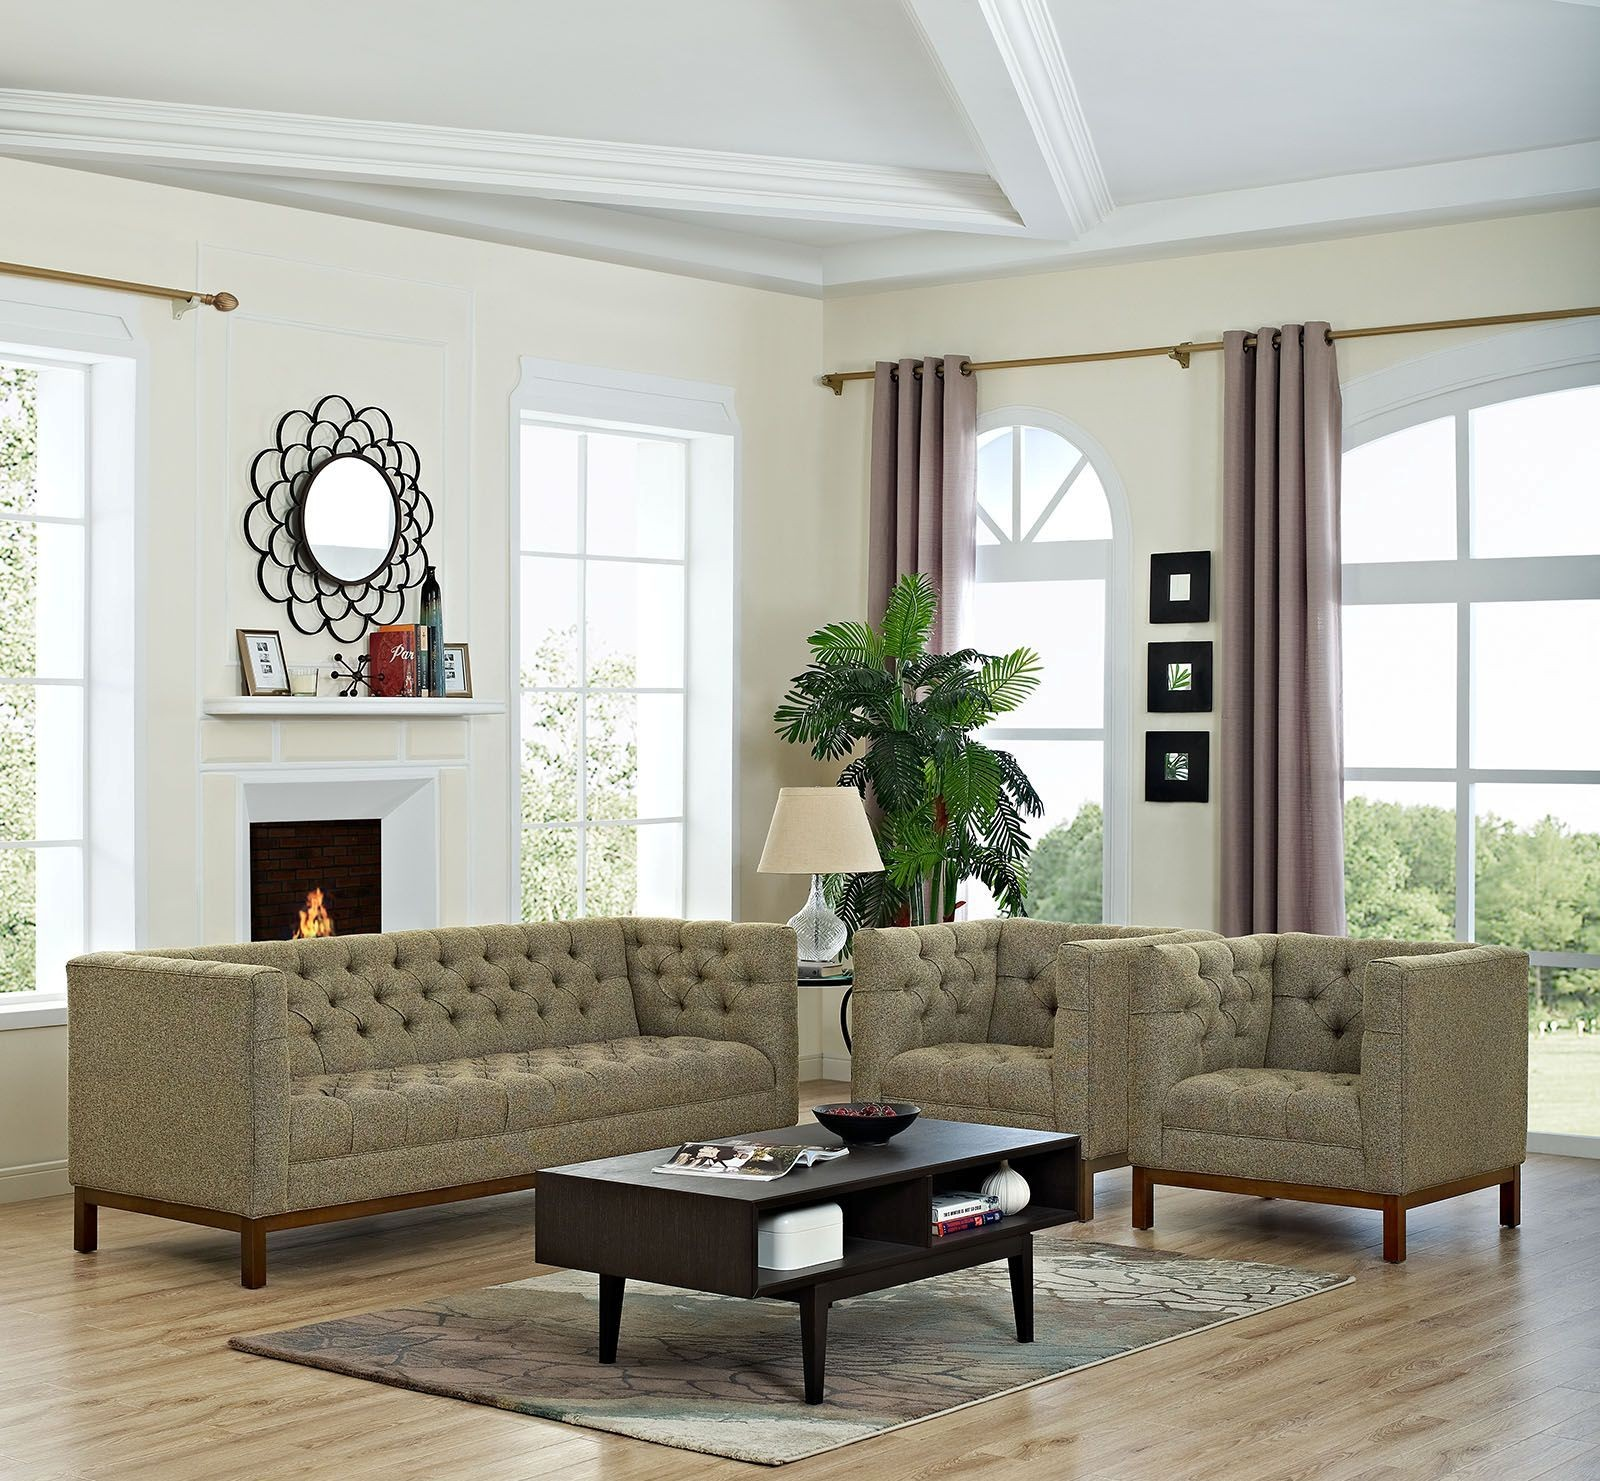 Panache Oatmeal 3 Piece Upholstered Living Room Set From Renegade Coleman Furniture